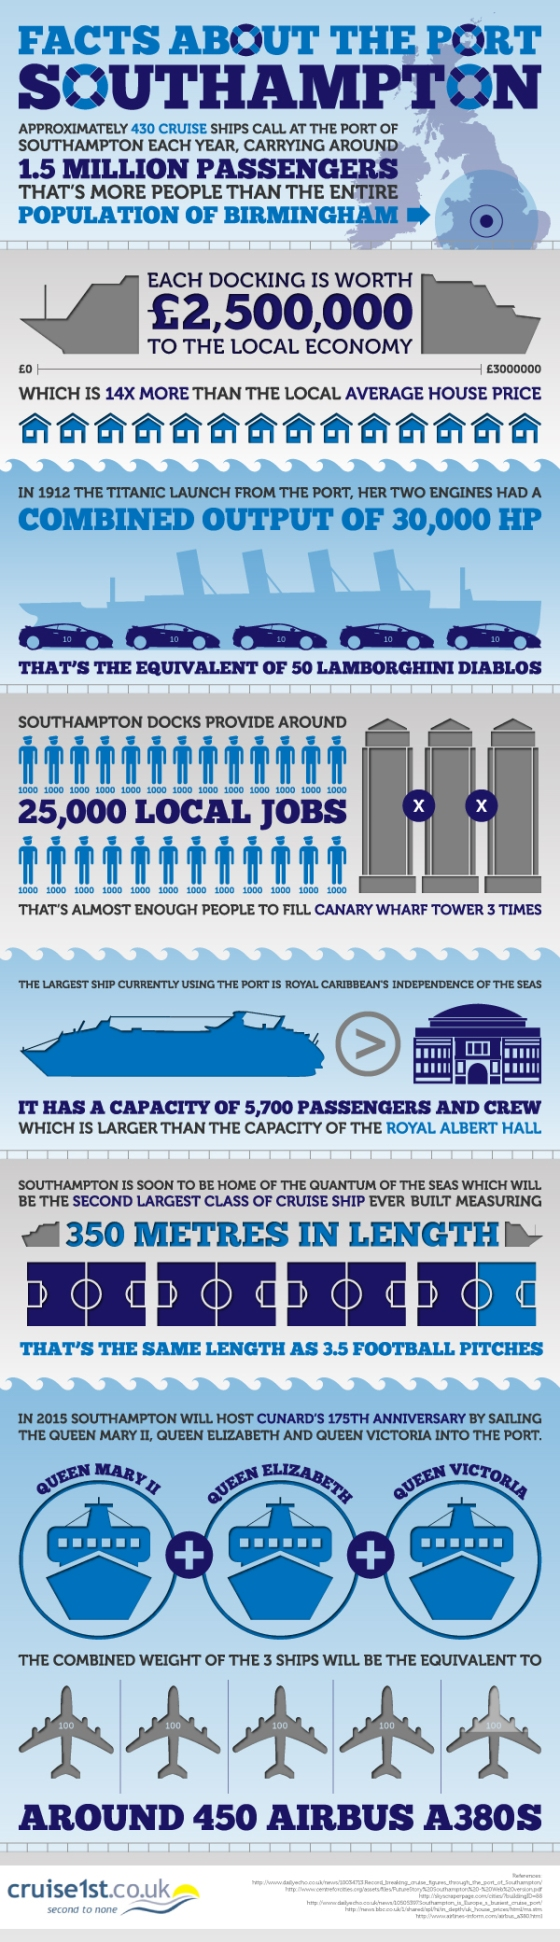 Infographic : Facts About the Port of Southampton